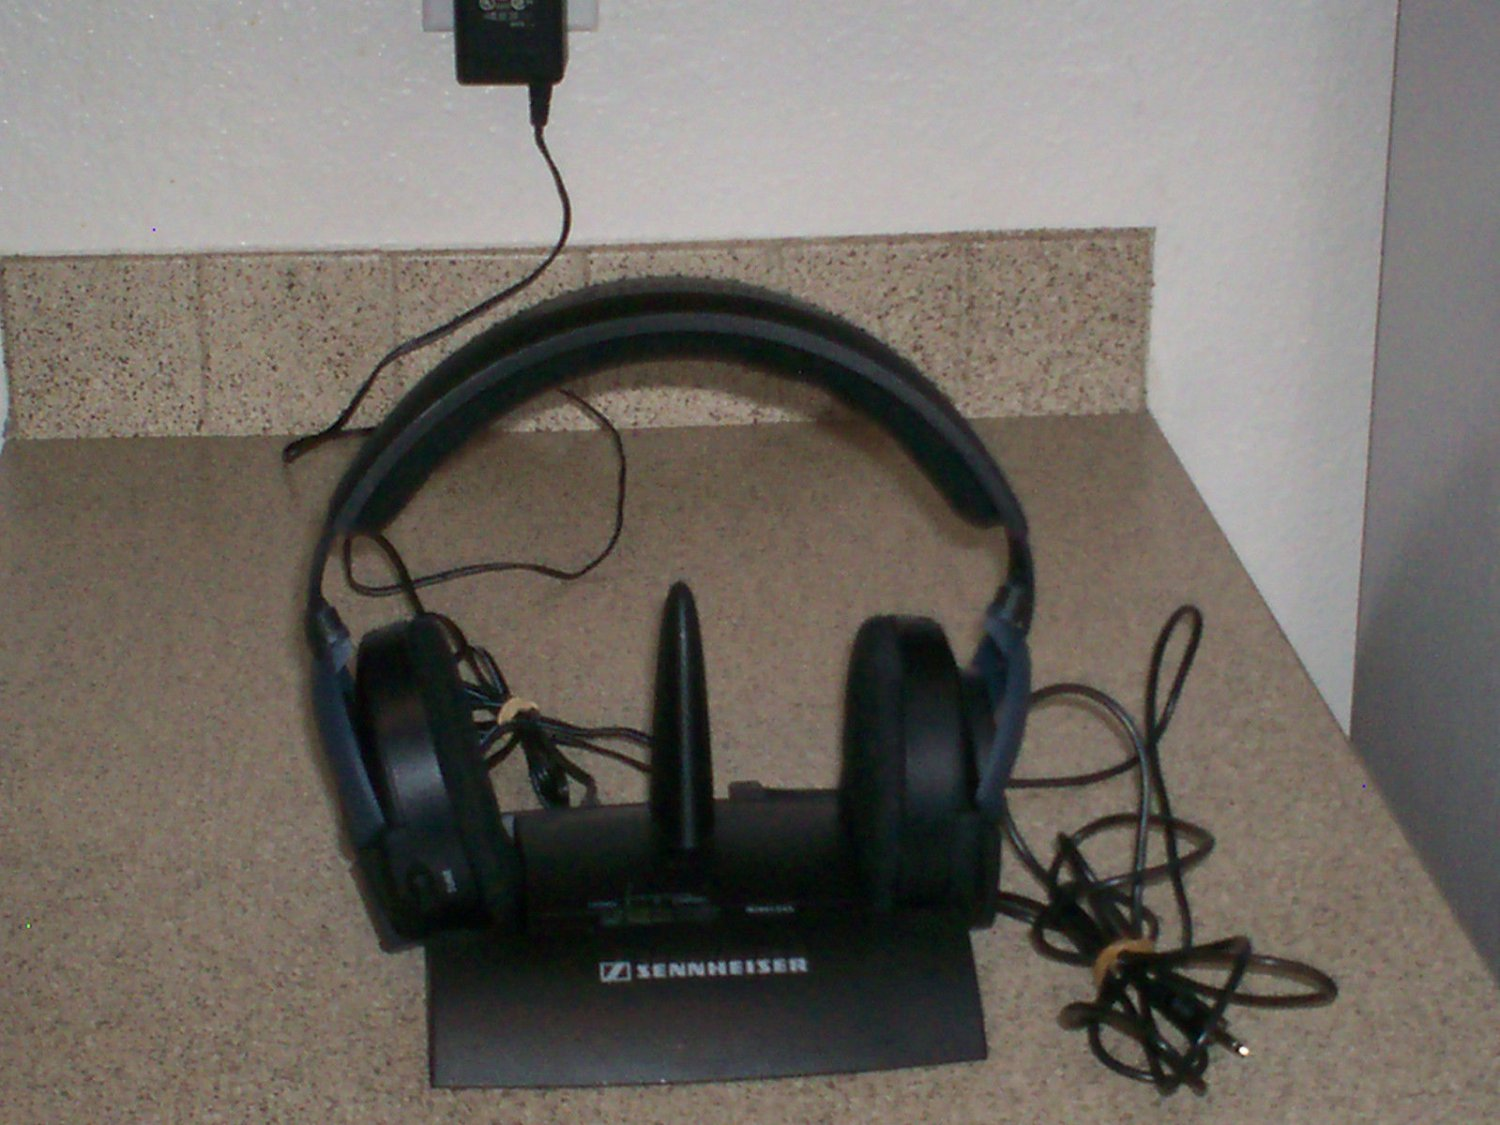 $0 Shipping W/Refurbished Sennheiser HDR 45 Headband Wireless Headphones - Black